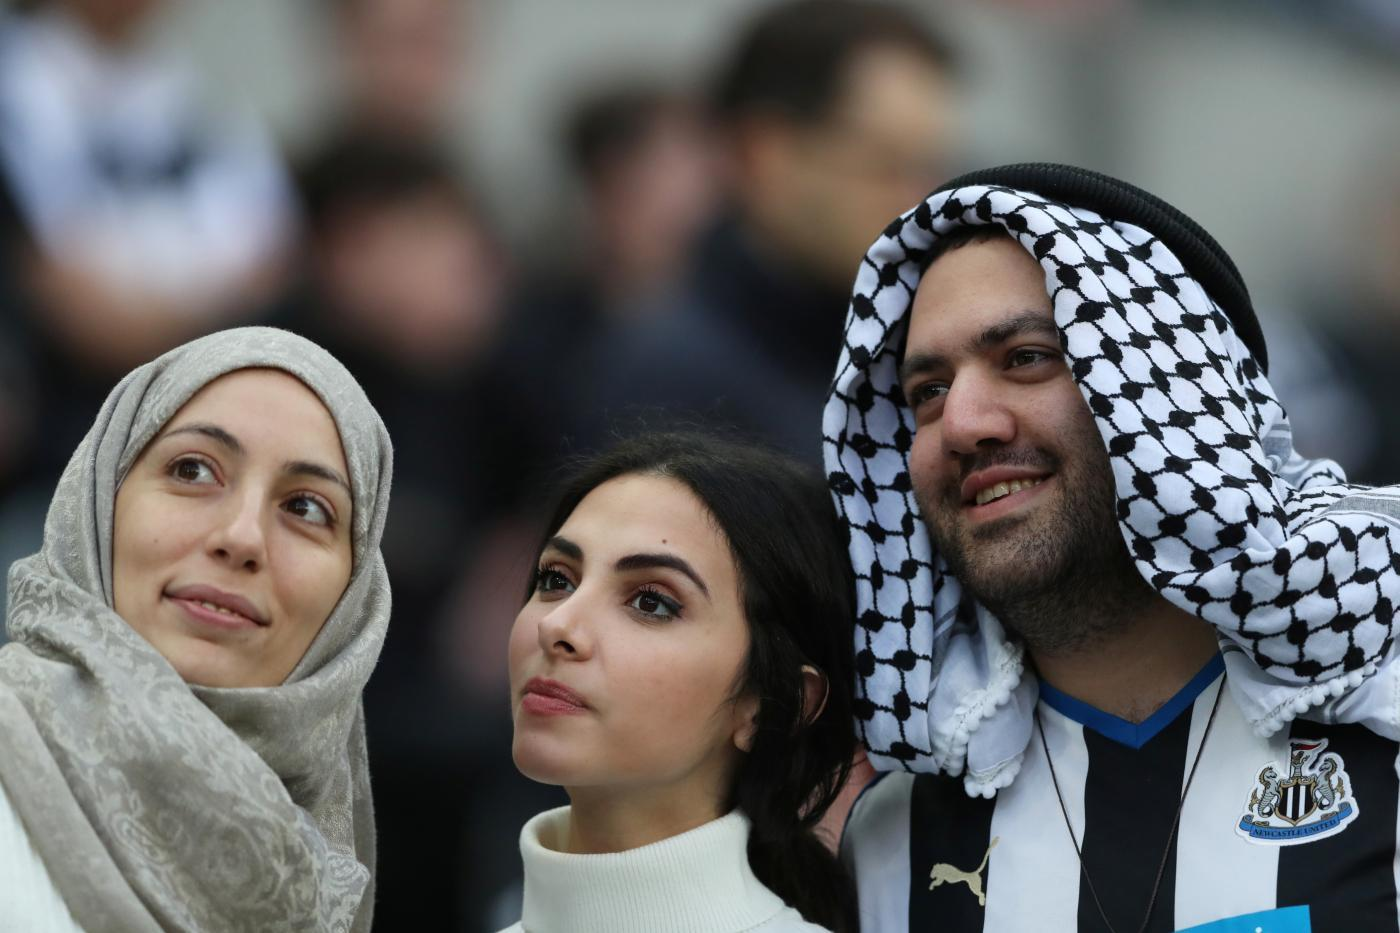 Newcastle Takeover: Fans From City'S Arab Community Welcome Saudi Bid's Collapse